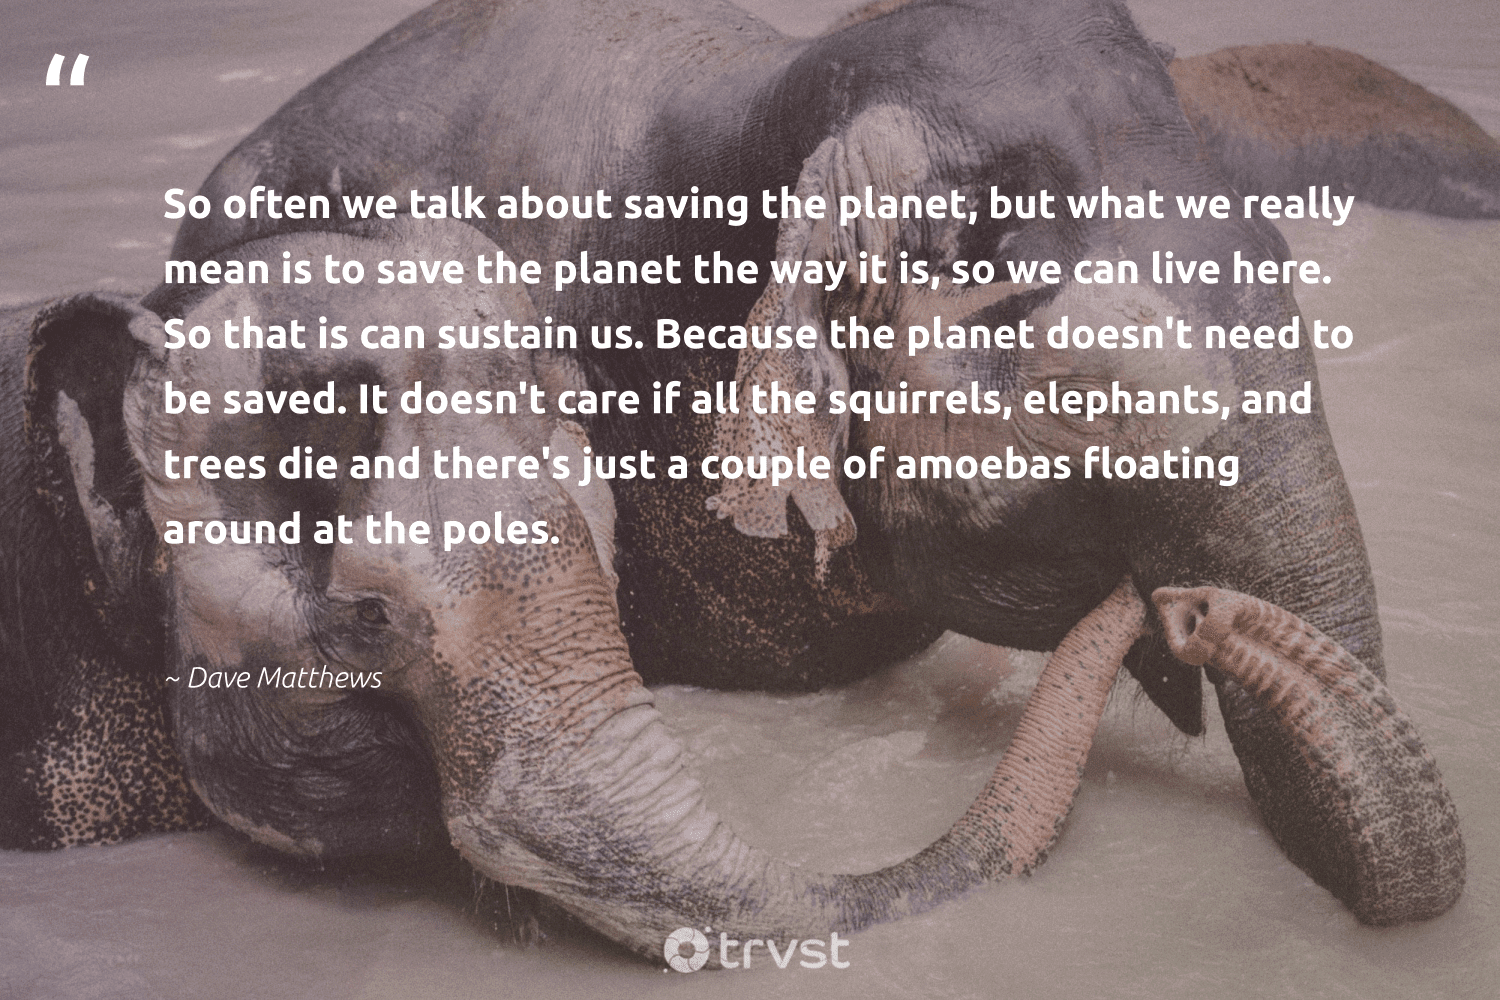 """""""So often we talk about saving the planet, but what we really mean is to save the planet the way it is, so we can live here. So that is can sustain us. Because the planet doesn't need to be saved. It doesn't care if all the squirrels, elephants, and trees die and there's just a couple of amoebas floating around at the poles.""""  - Dave Matthews #trvst #quotes #savetheplanet #planet #trees #elephants #environment #explore #natureseekers #changetheworld #mothernature #endangered"""